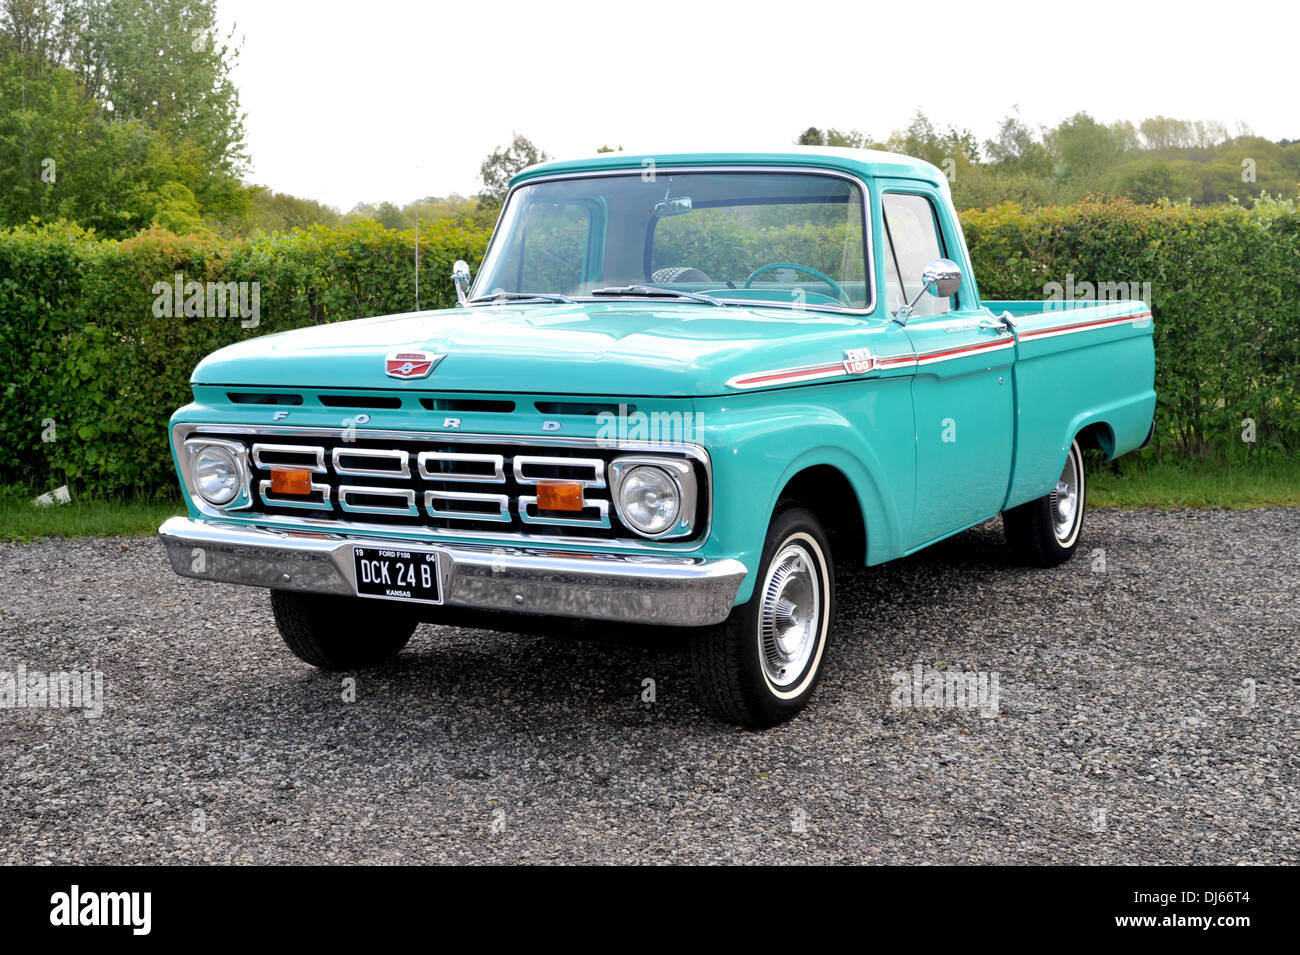 Blue Ford F100 Stock Photos Images Alamy 1964 Short Bed Classic American Pick Up Truck Image